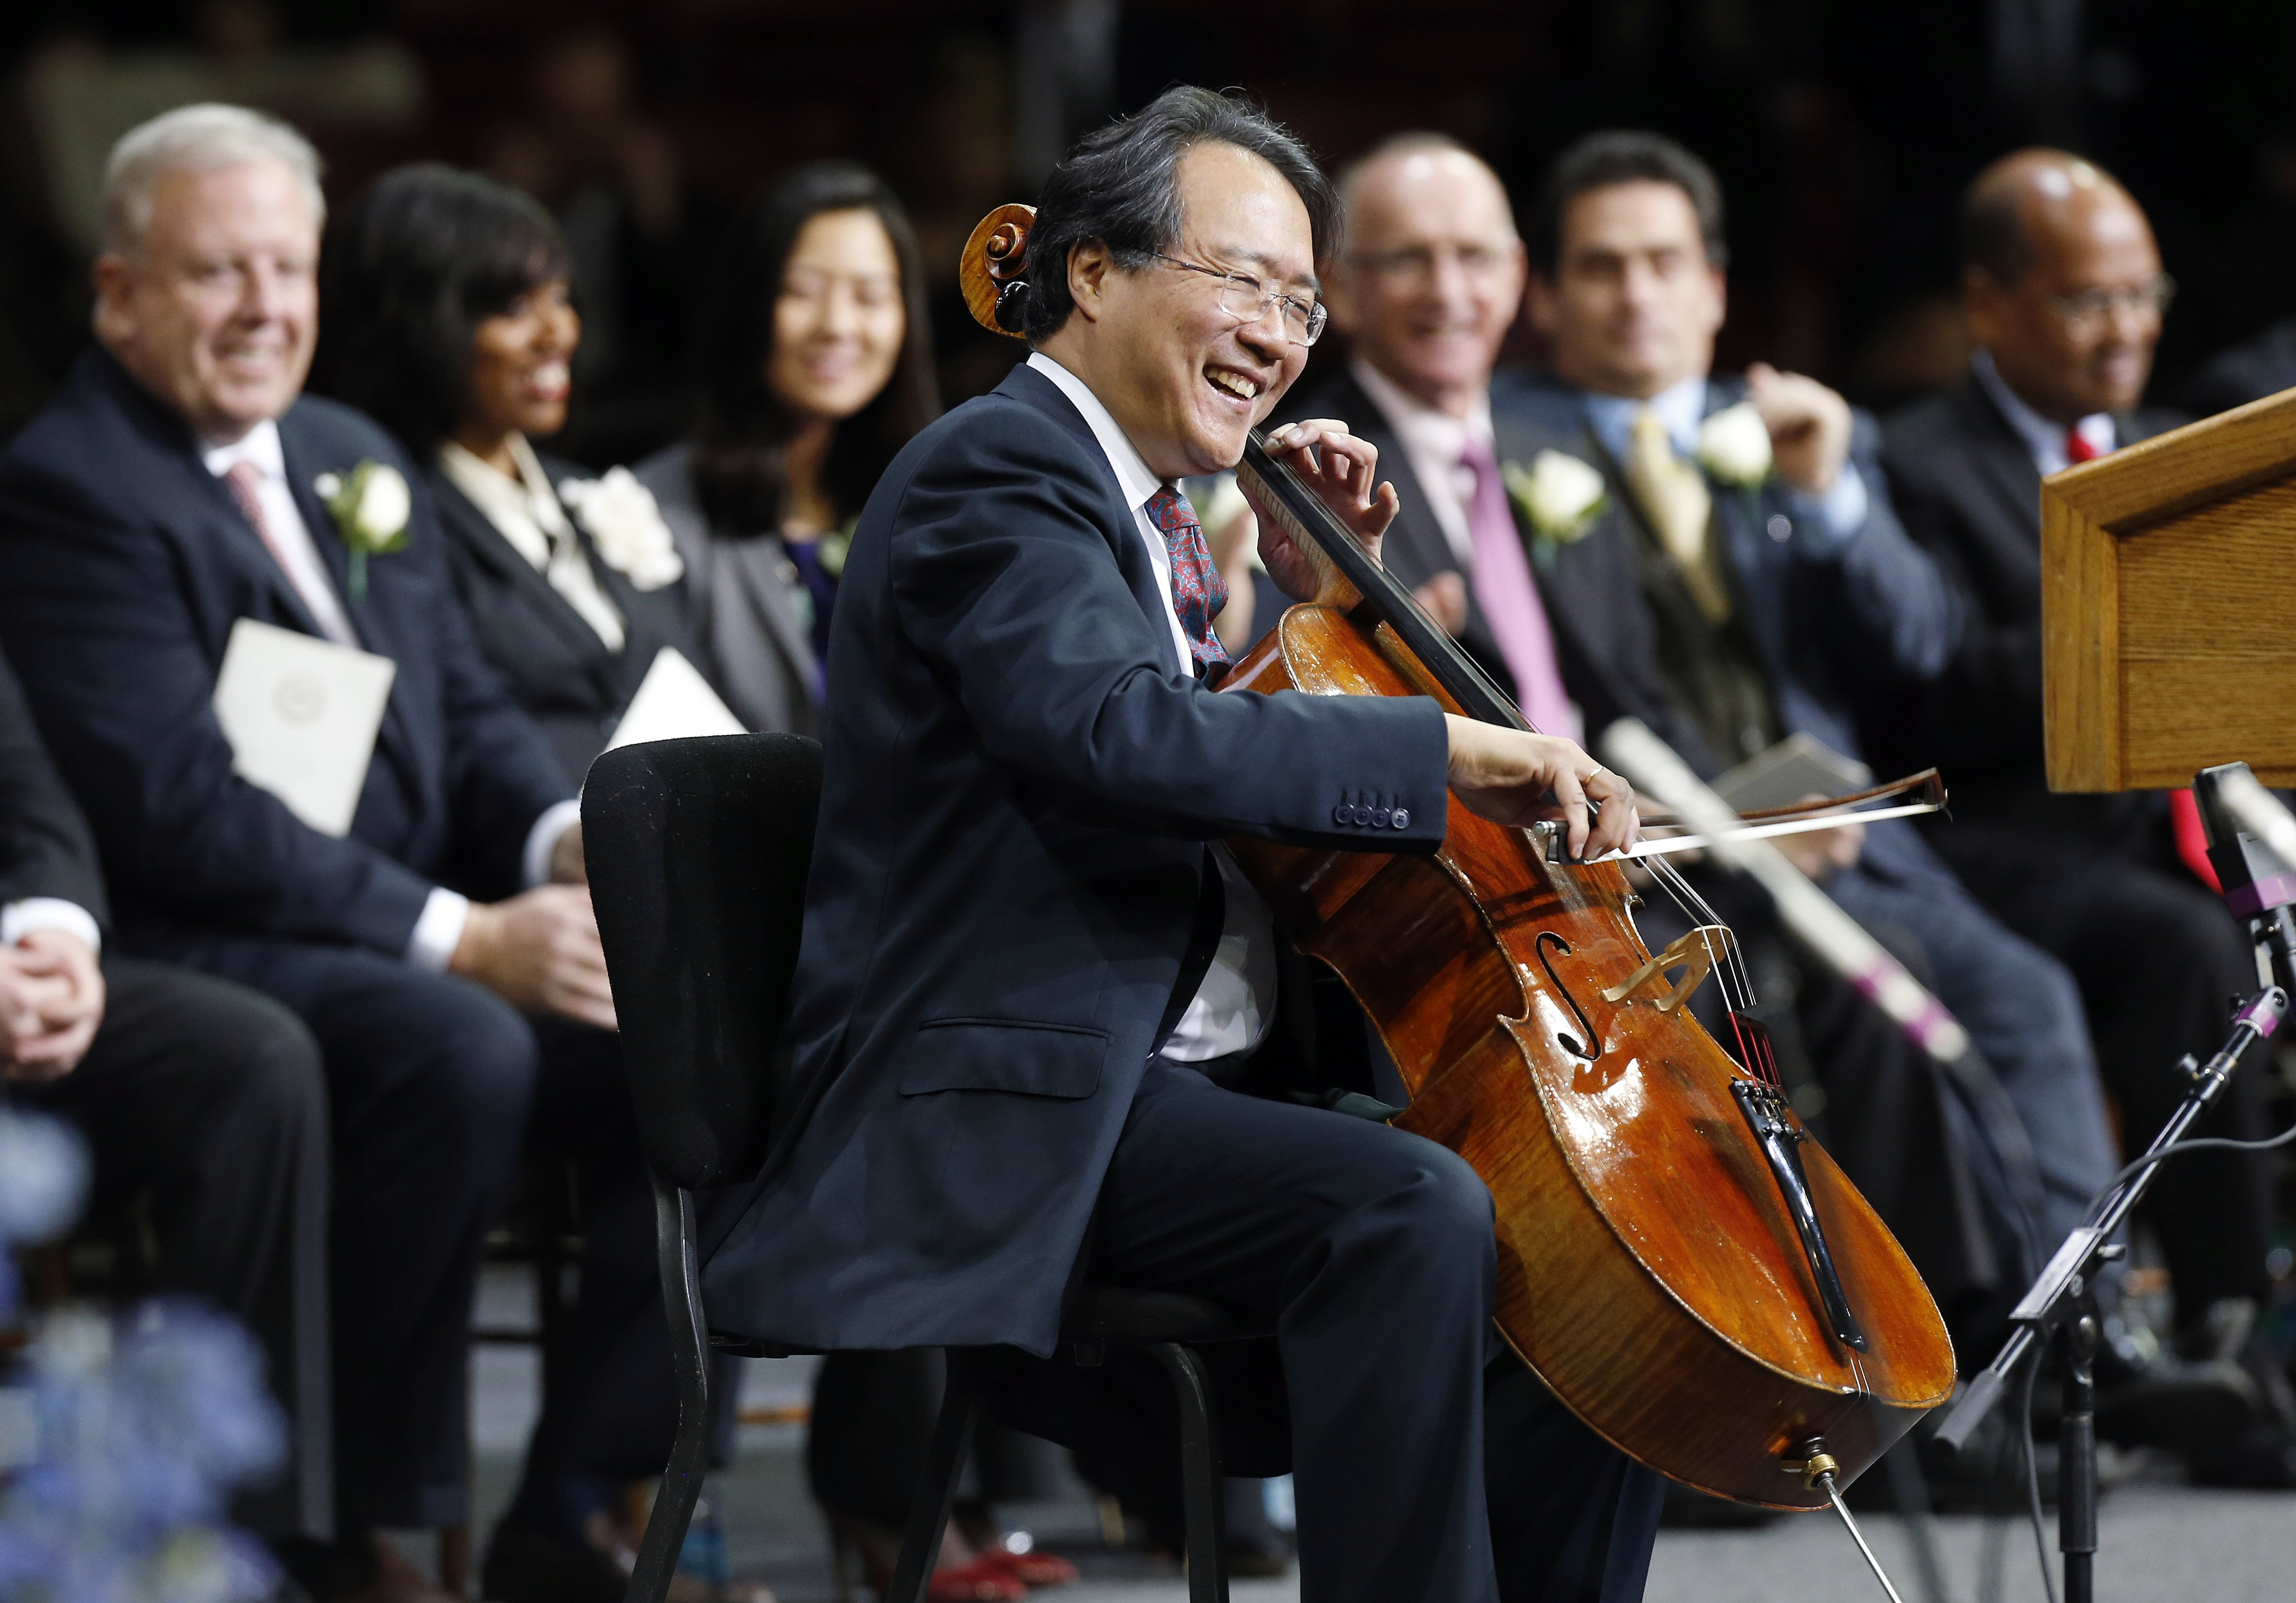 Cellist Yo-Yo Ma performs during inauguration ceremonies for Boston mayor-elect Marty Walsh in Conte Forum at Boston College in Boston on Jan. 6, 2014.